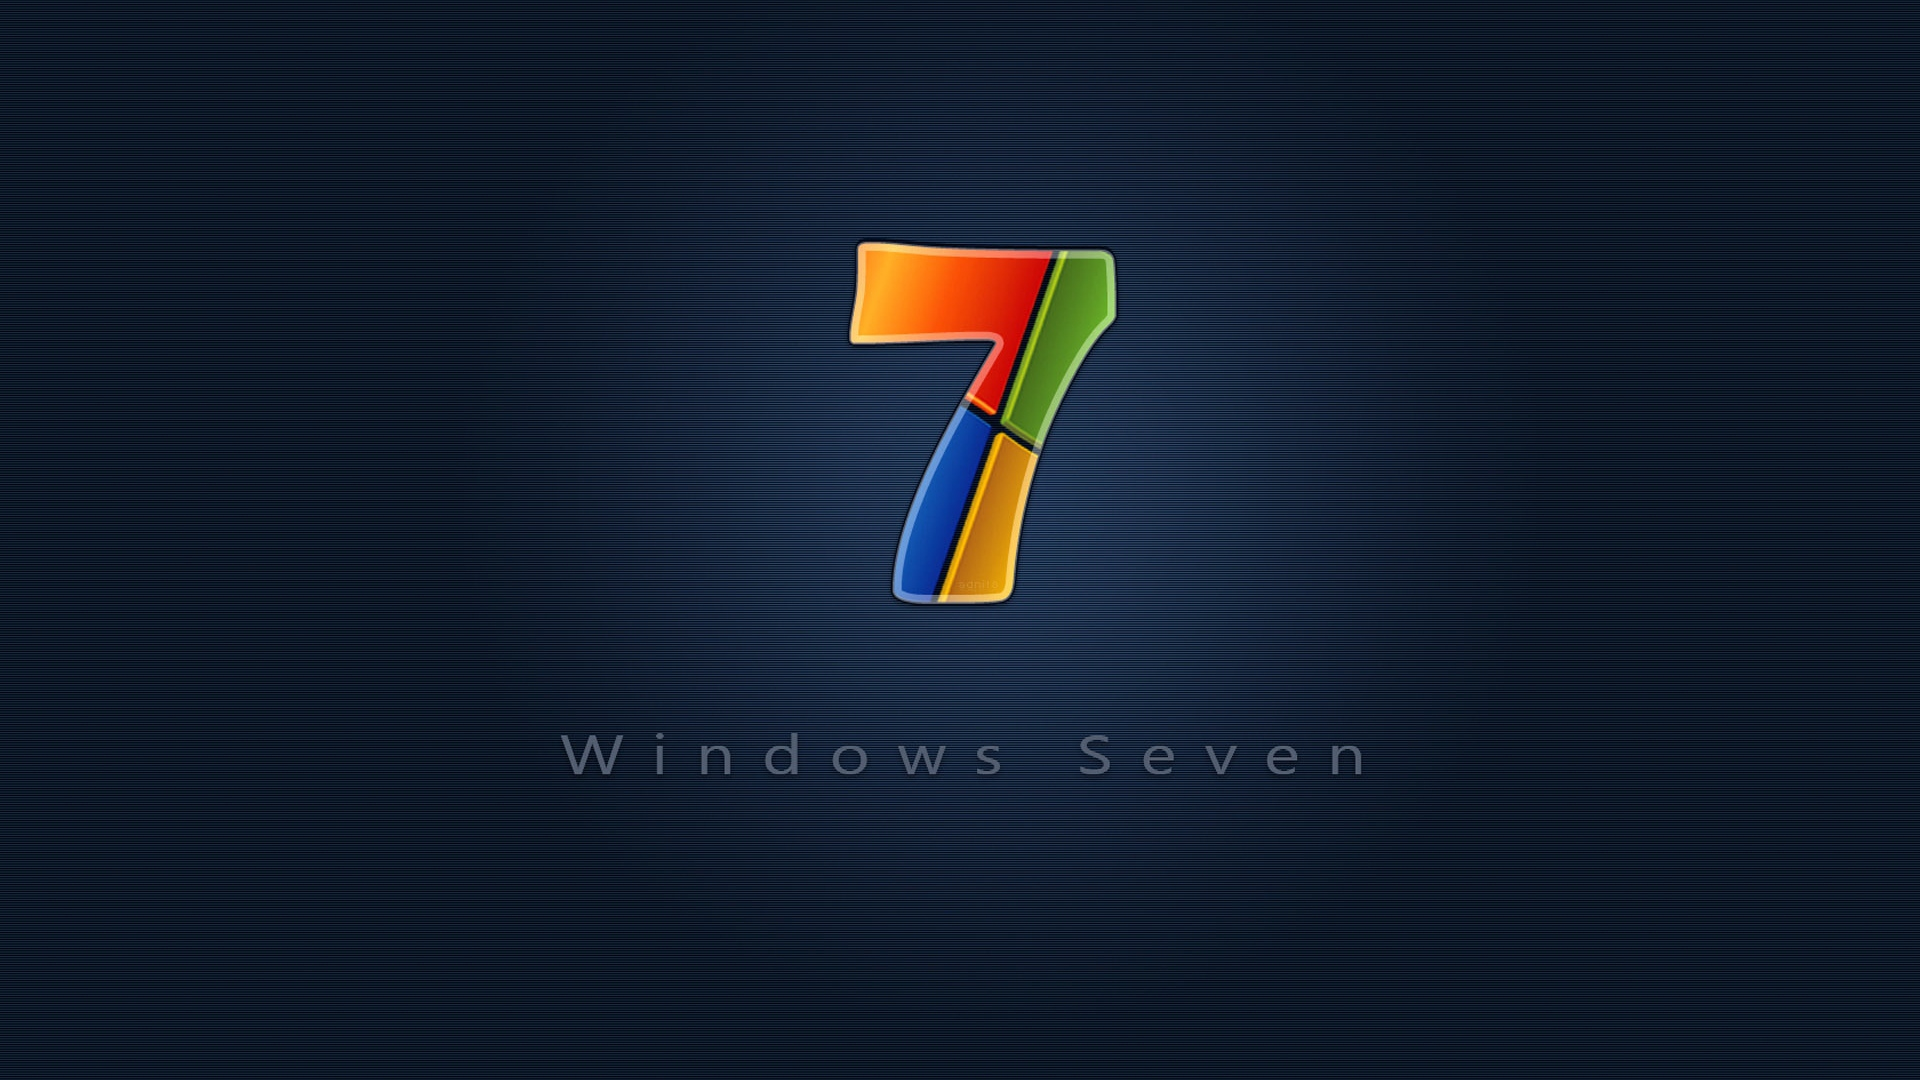 Windows 7 Red Blue